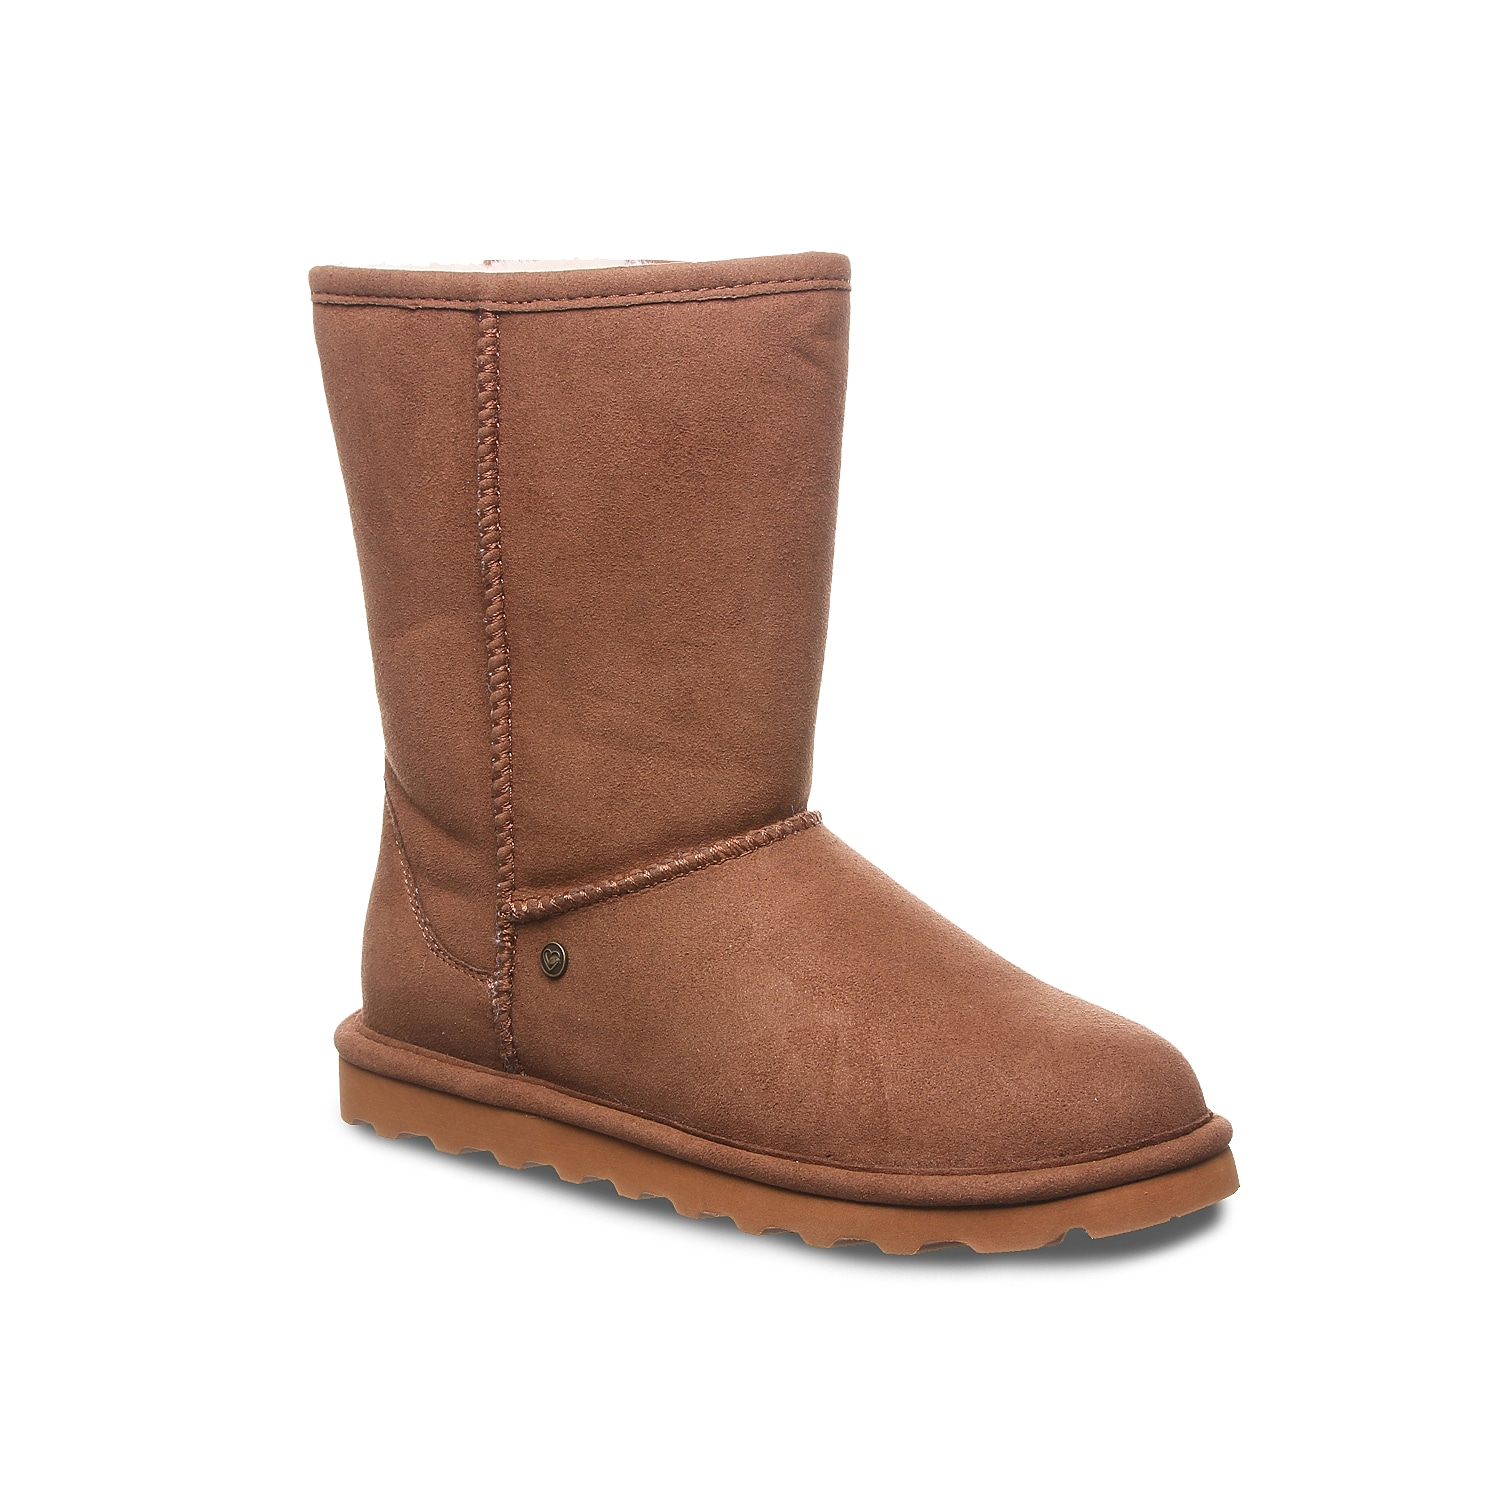 Make the colder months bearable with the Bearpaw Elle snow boot. This flat boot is treated with NeverWet® water-repelling technology and faux fur lining that ensure your foot stays warm and dry.Click here for Boot Measuring Guide.